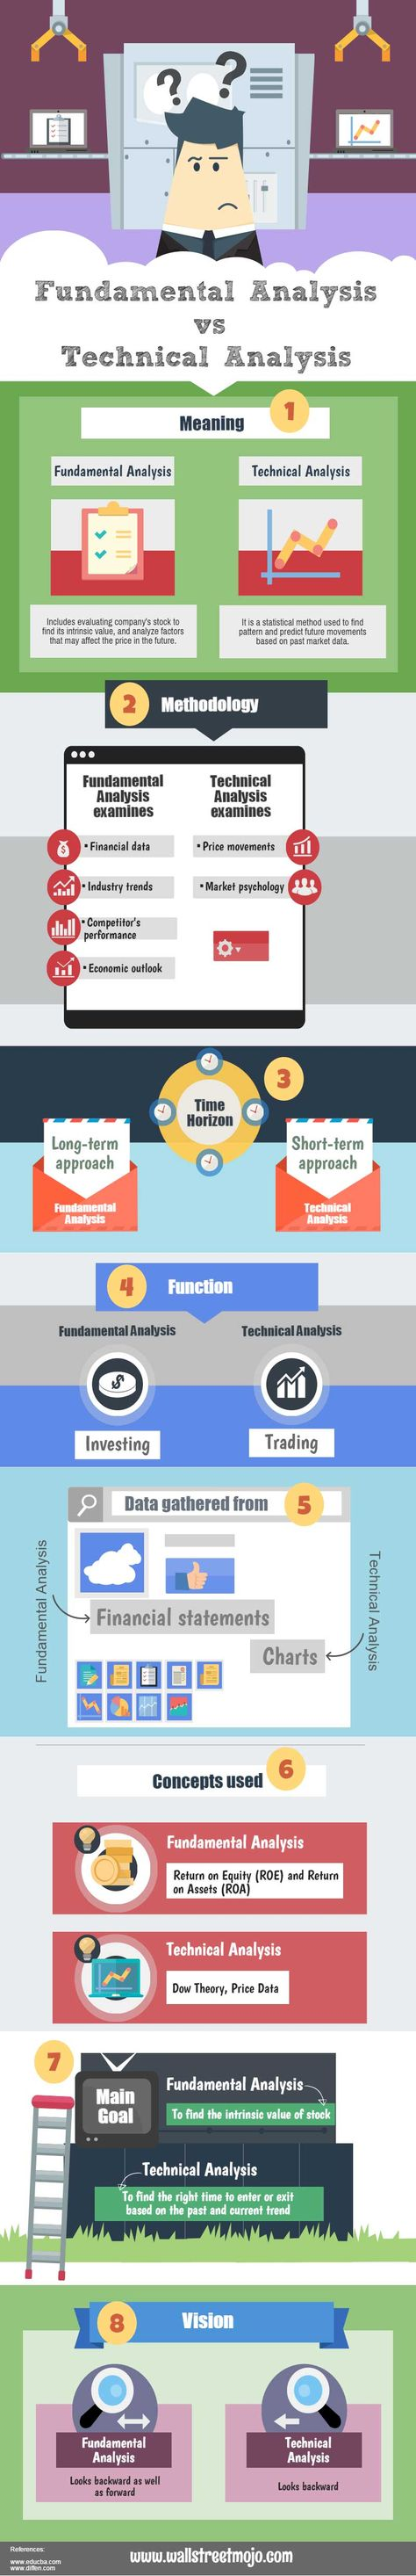 Choosing a correct path to invest in stock market means planning a better future.  Though in today's time many of you must be in a confusion when it comes to choosing some wise career opportunities. Here is a quick infographic explanation  to those who are in dilemma whether to go for fundamental analysis vs technical  analysis.